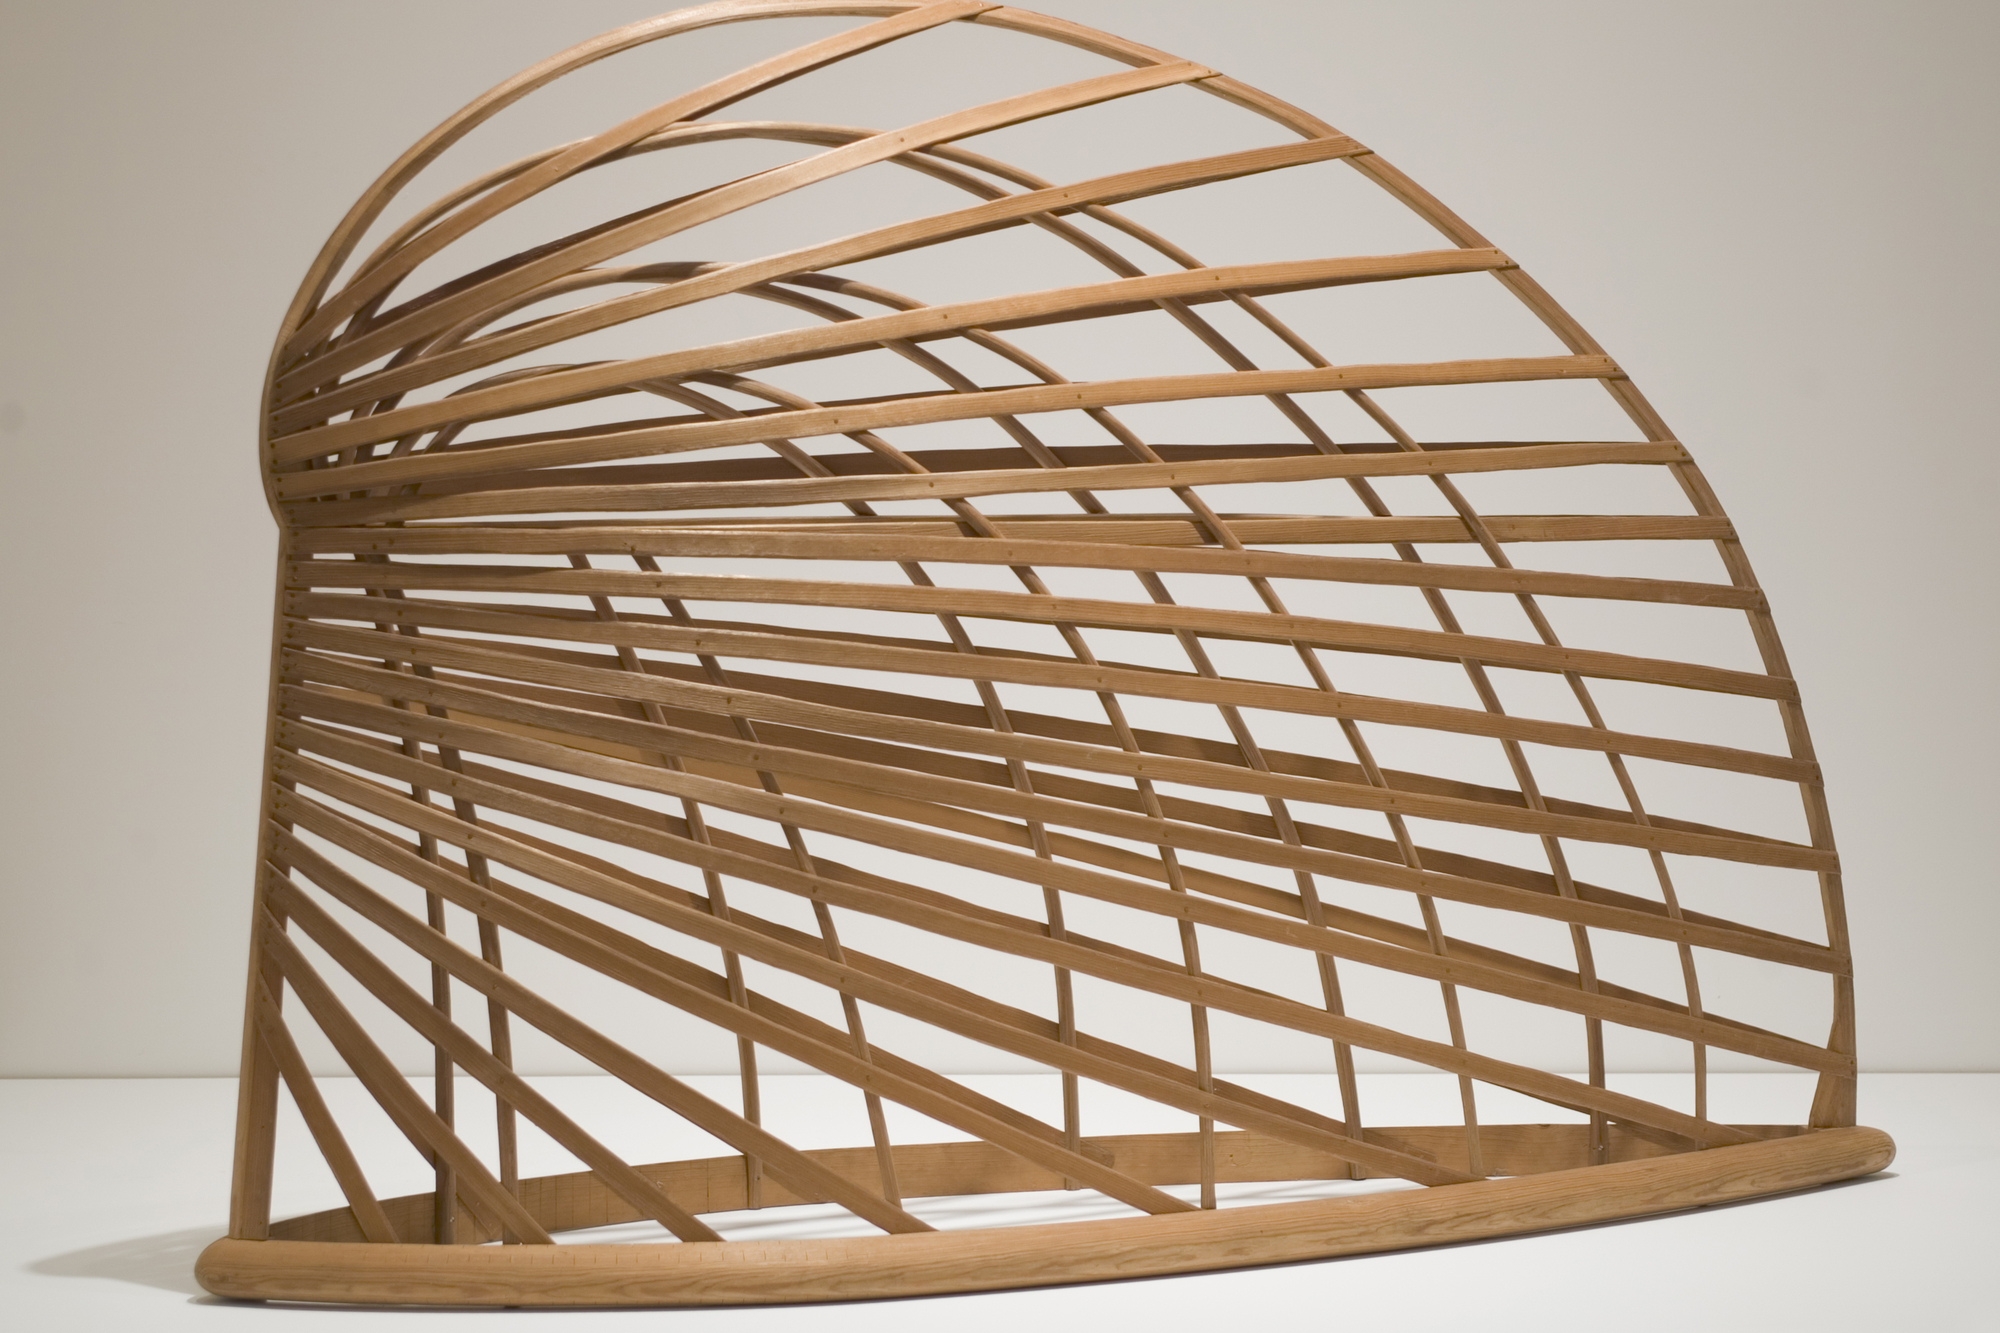 Martin Puryear. Bower. 1980. Sitka spruce and pine, 64″ × 7′ 10 3/4″ × 26 5/8″ (162.6 × 240.7 × 67.6 cm). Smithsonian American Art Museum, Washington D.C. Museum purchase made possible through the Luisita L. and Franz H. Denghausen Endowment, Alexander Calder, Frank Wilbert Stokes, and the Ford Motor Company. Photograph by Richard Barnes. © 2007 Martin Puryear